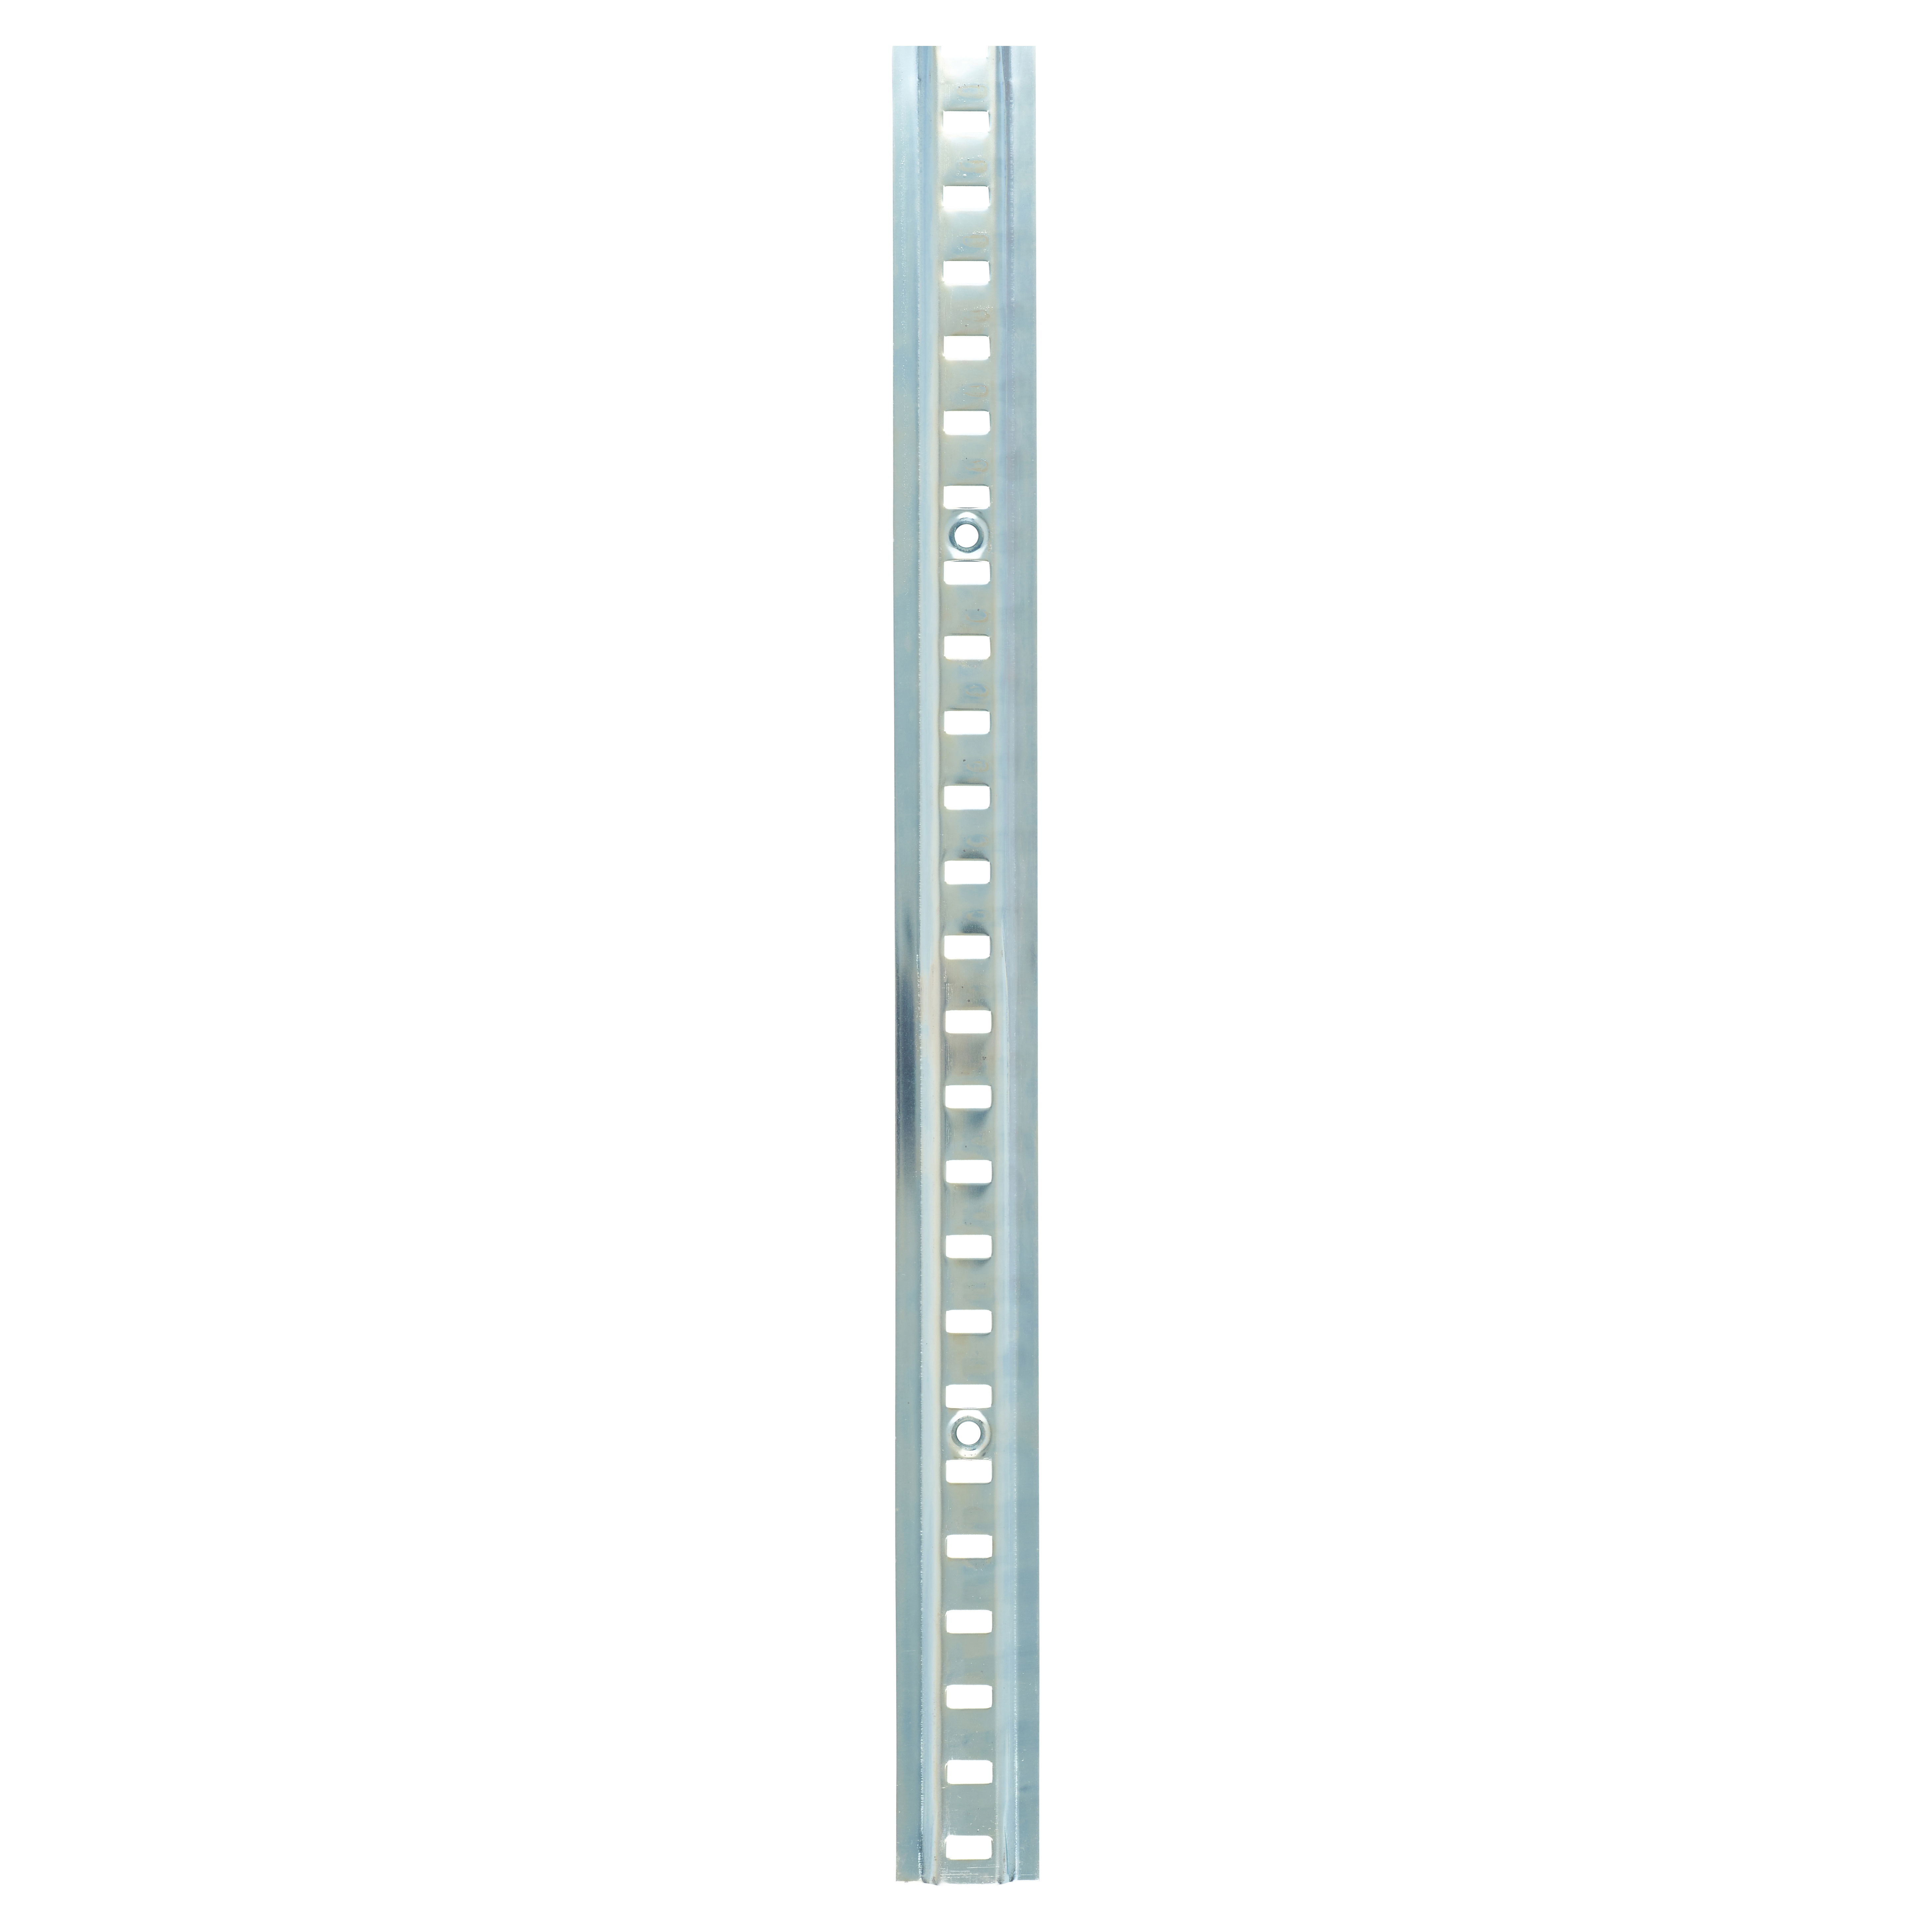 ION Raised Bookcase Strip - 1829 x 24mm - Bright Zinc Plated)